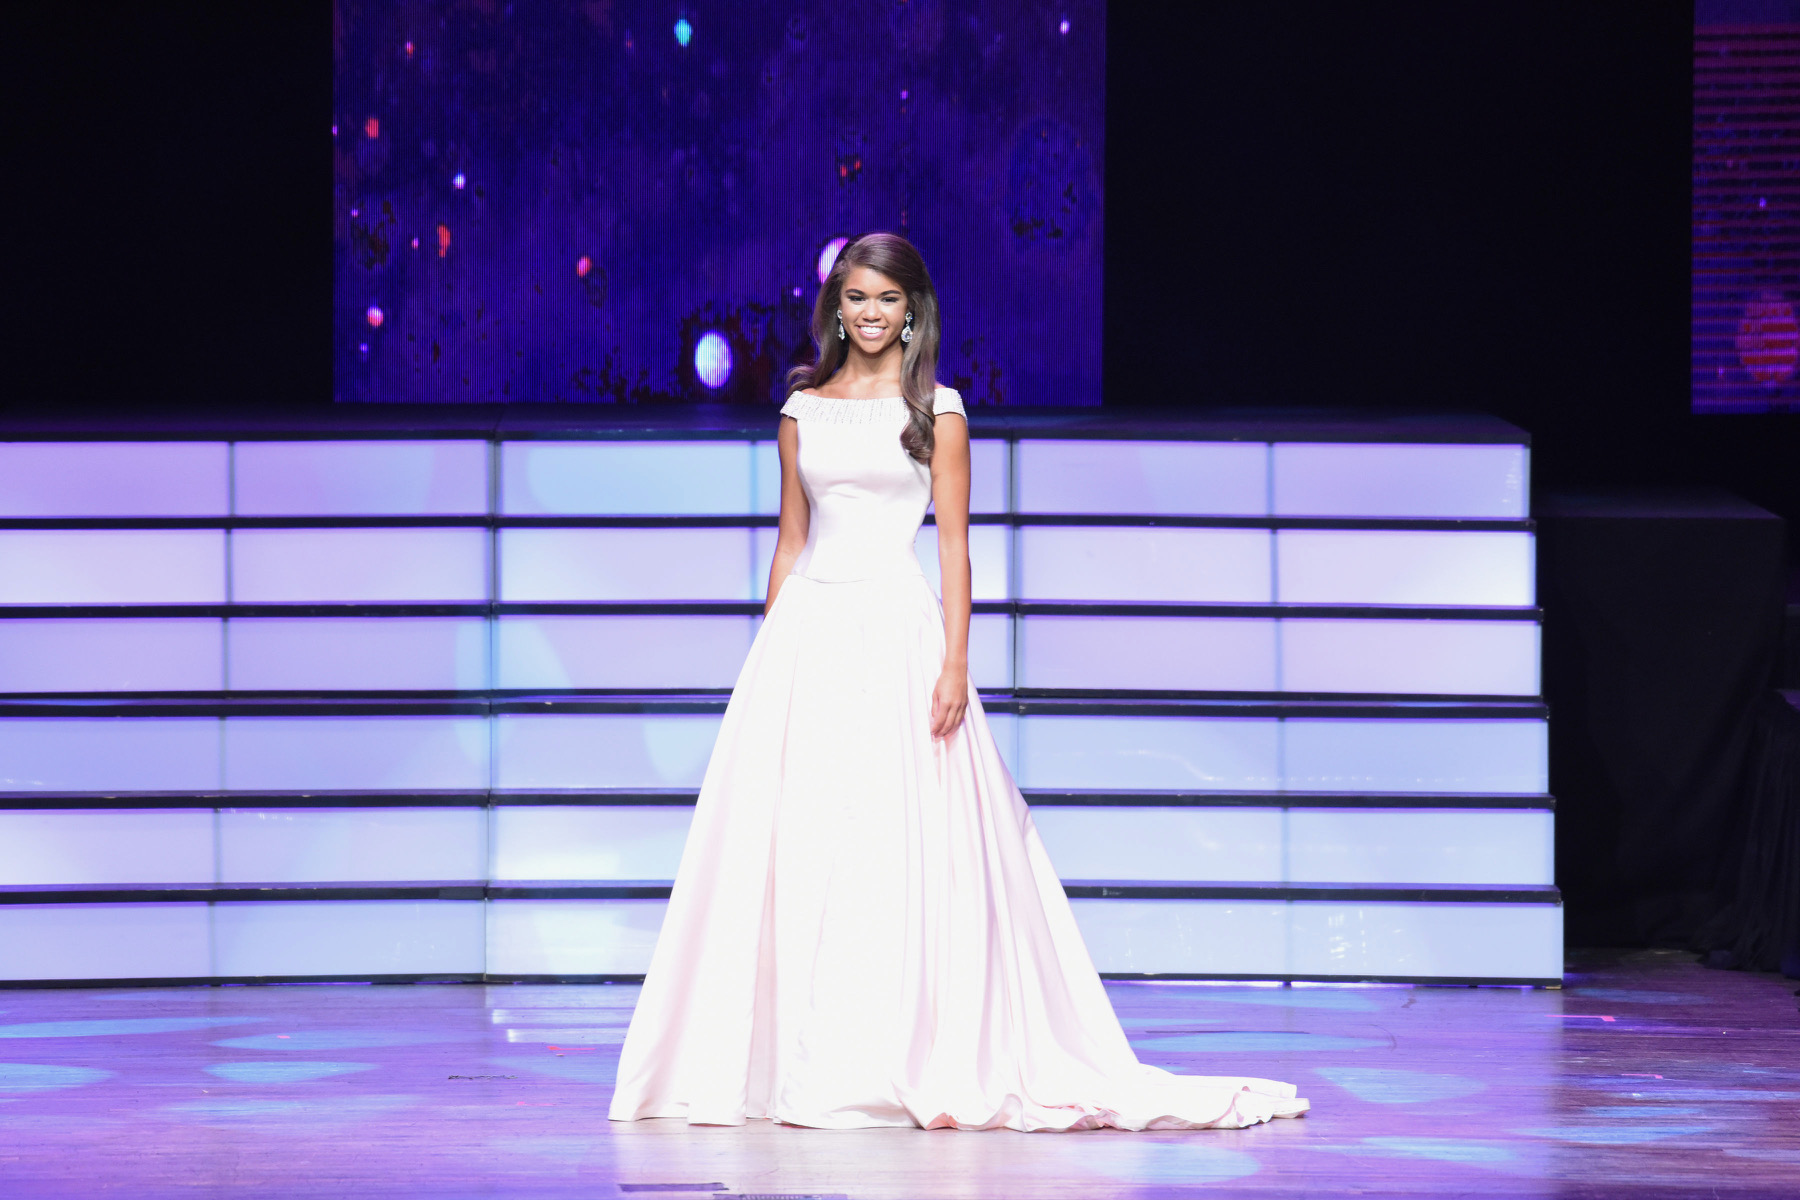 Kayley walking on stage in evening gown